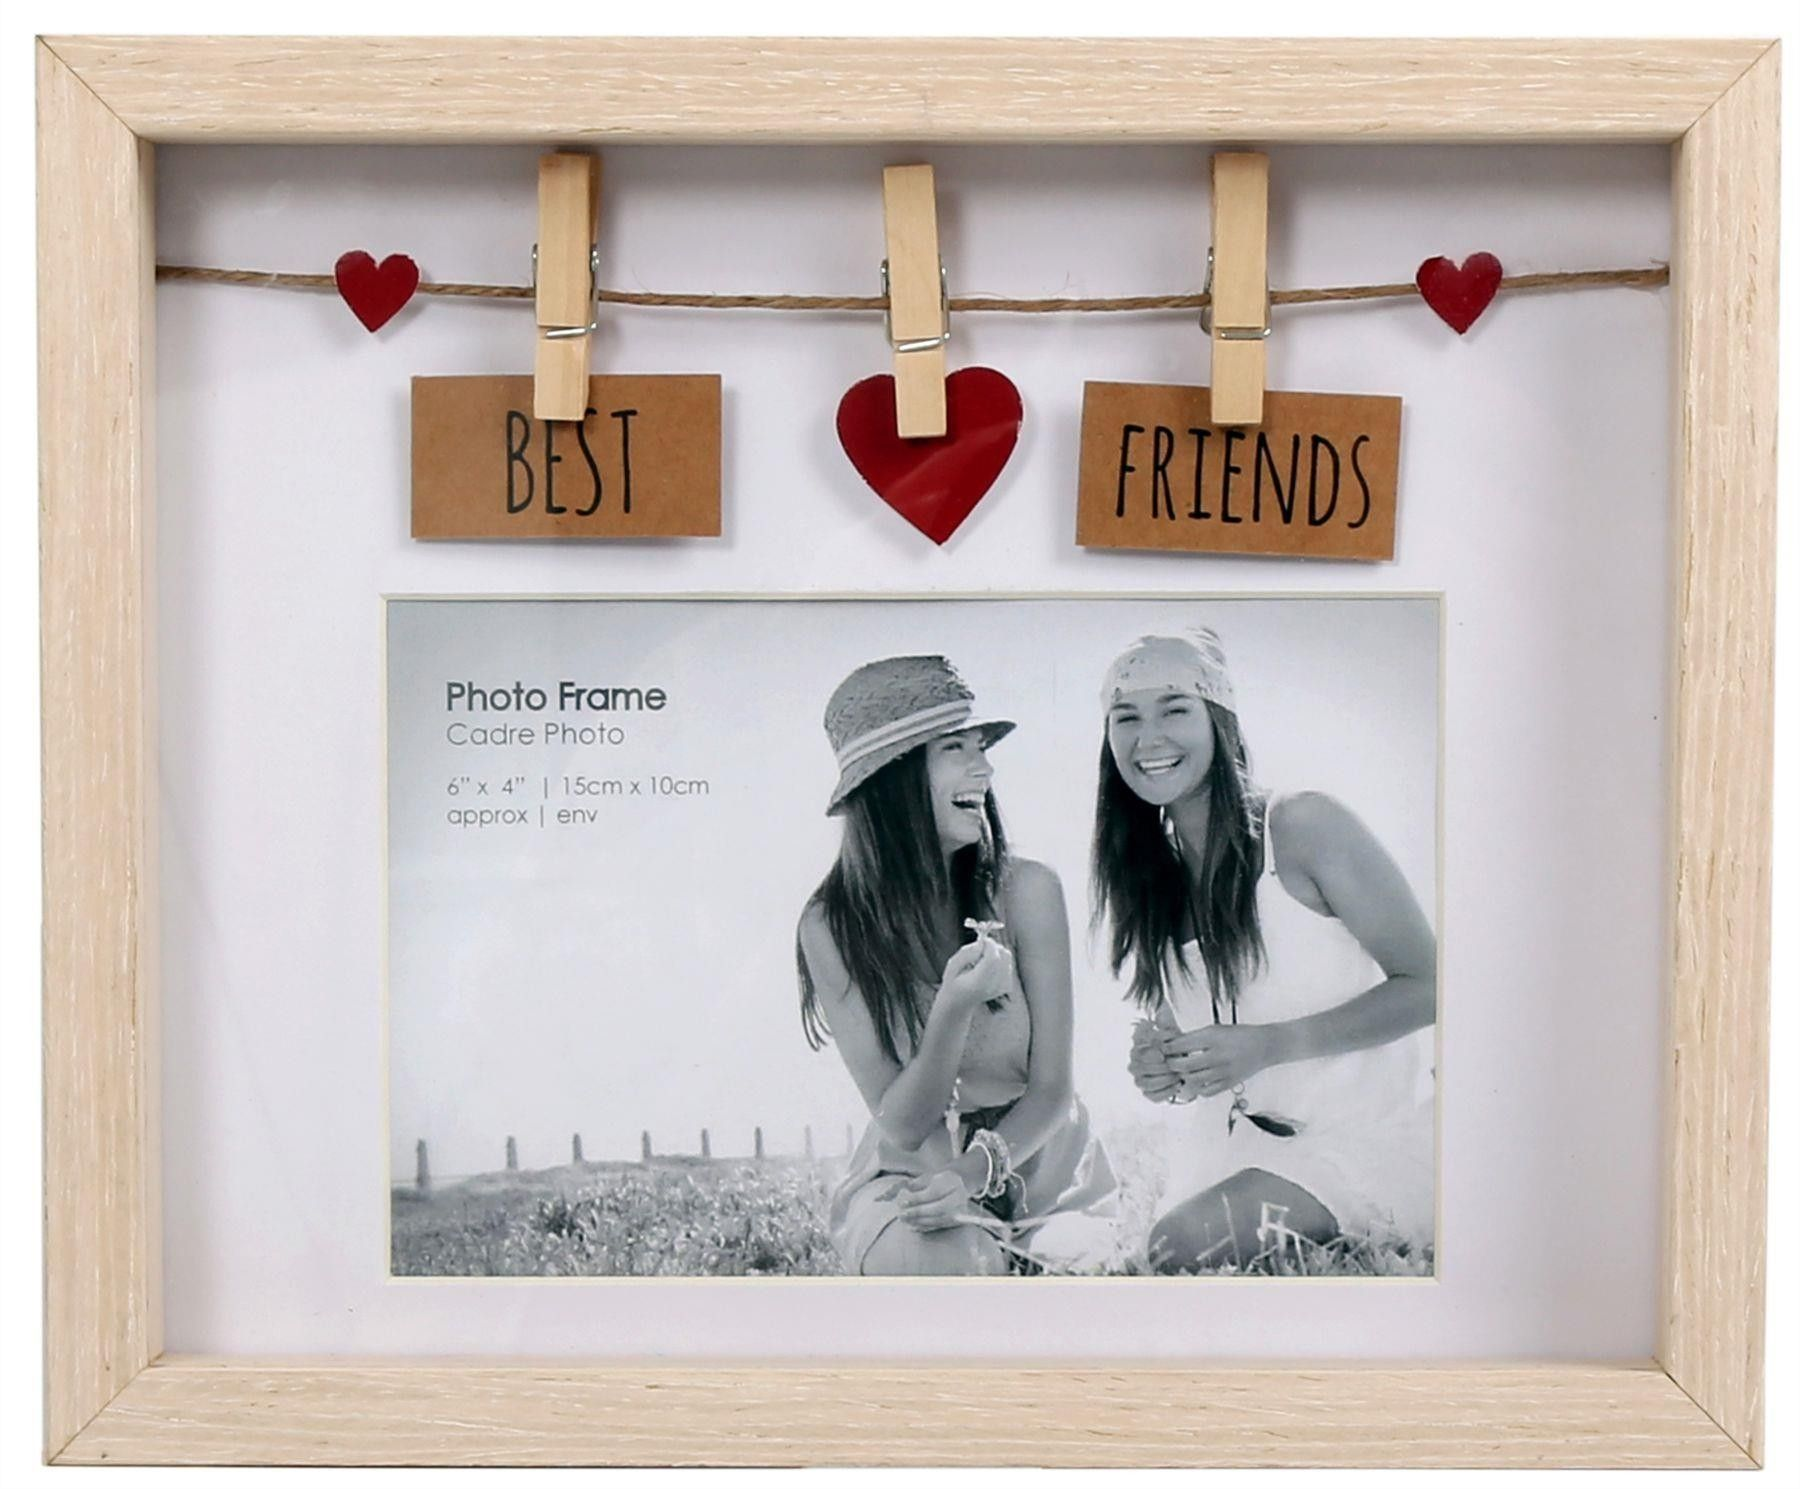 Clothes Line Wooden Box Frame With Pegs For 6 X 4 Photo  Best Friends  Photo Frames  HOME ACCESSORIES  HOUSE  HOME gifts gifts for best friends gifts for boyfriend gifts...